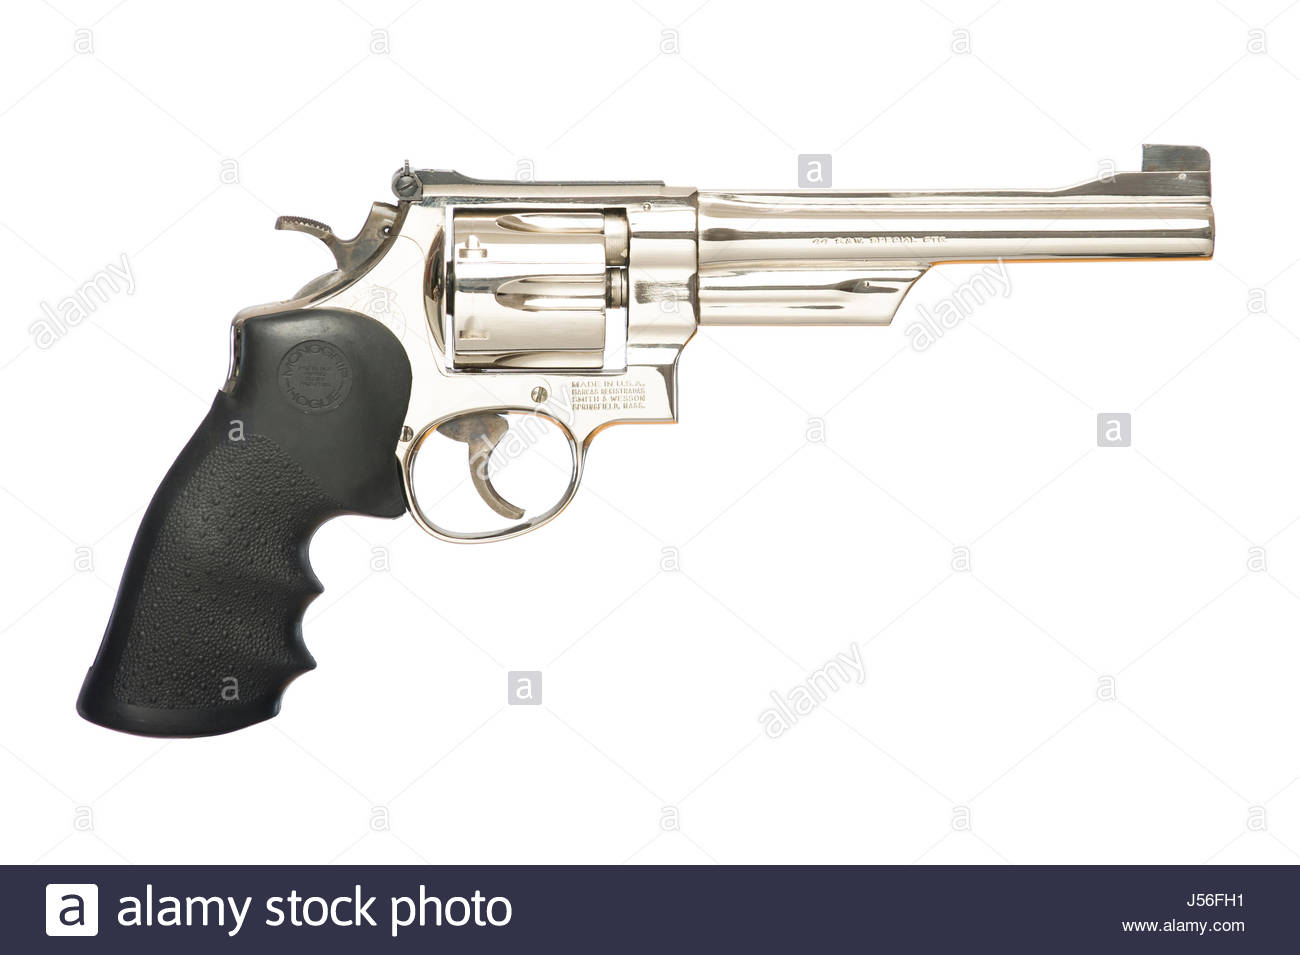 Smith & Wesson CTG, 44 special, N Frame, 6.5 inch barrel revolver ...